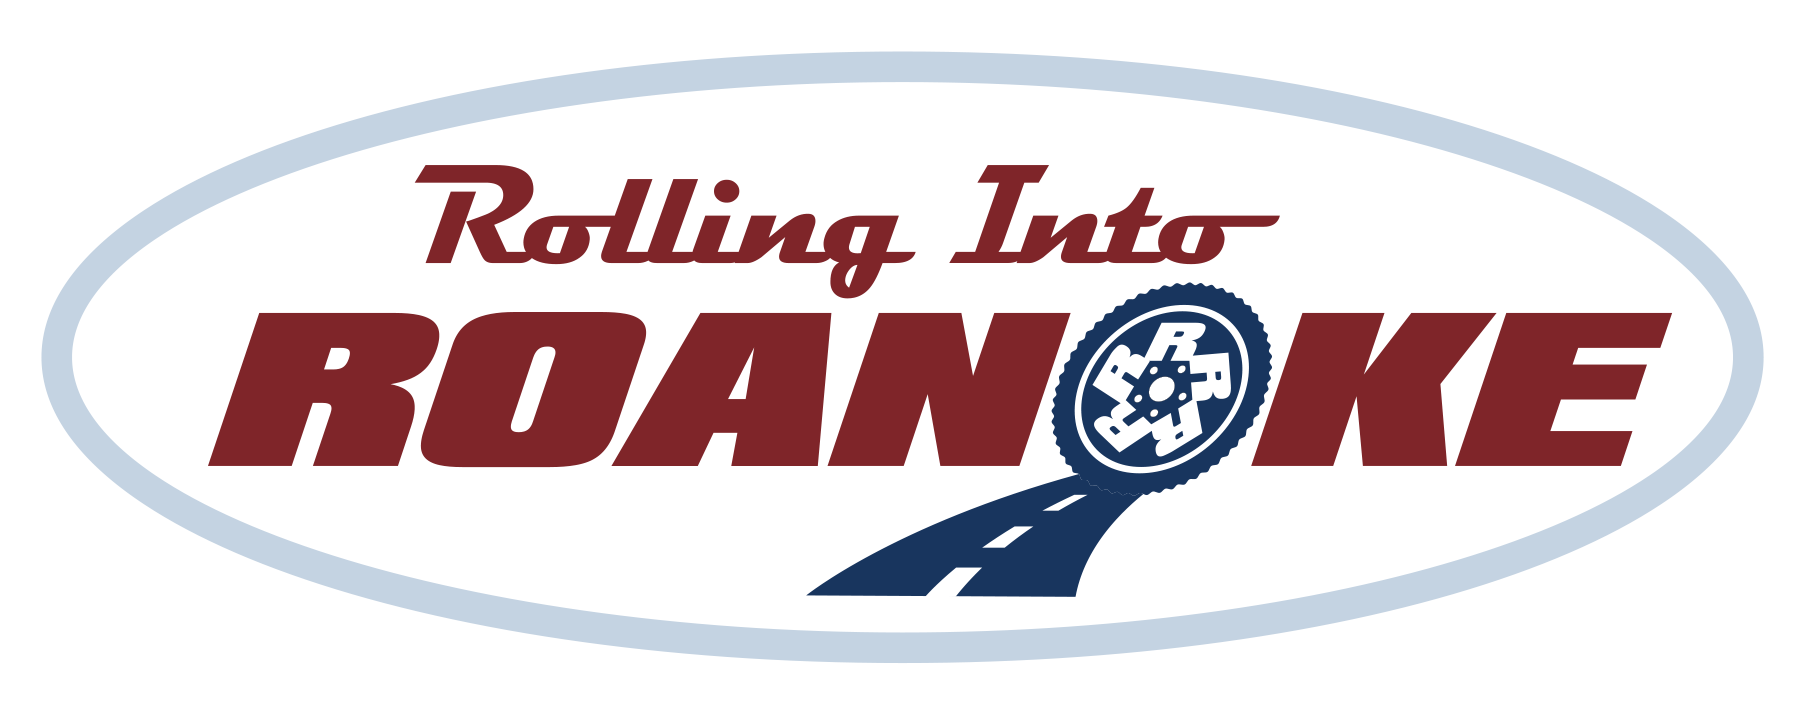 Rolling Into Roanoke logo